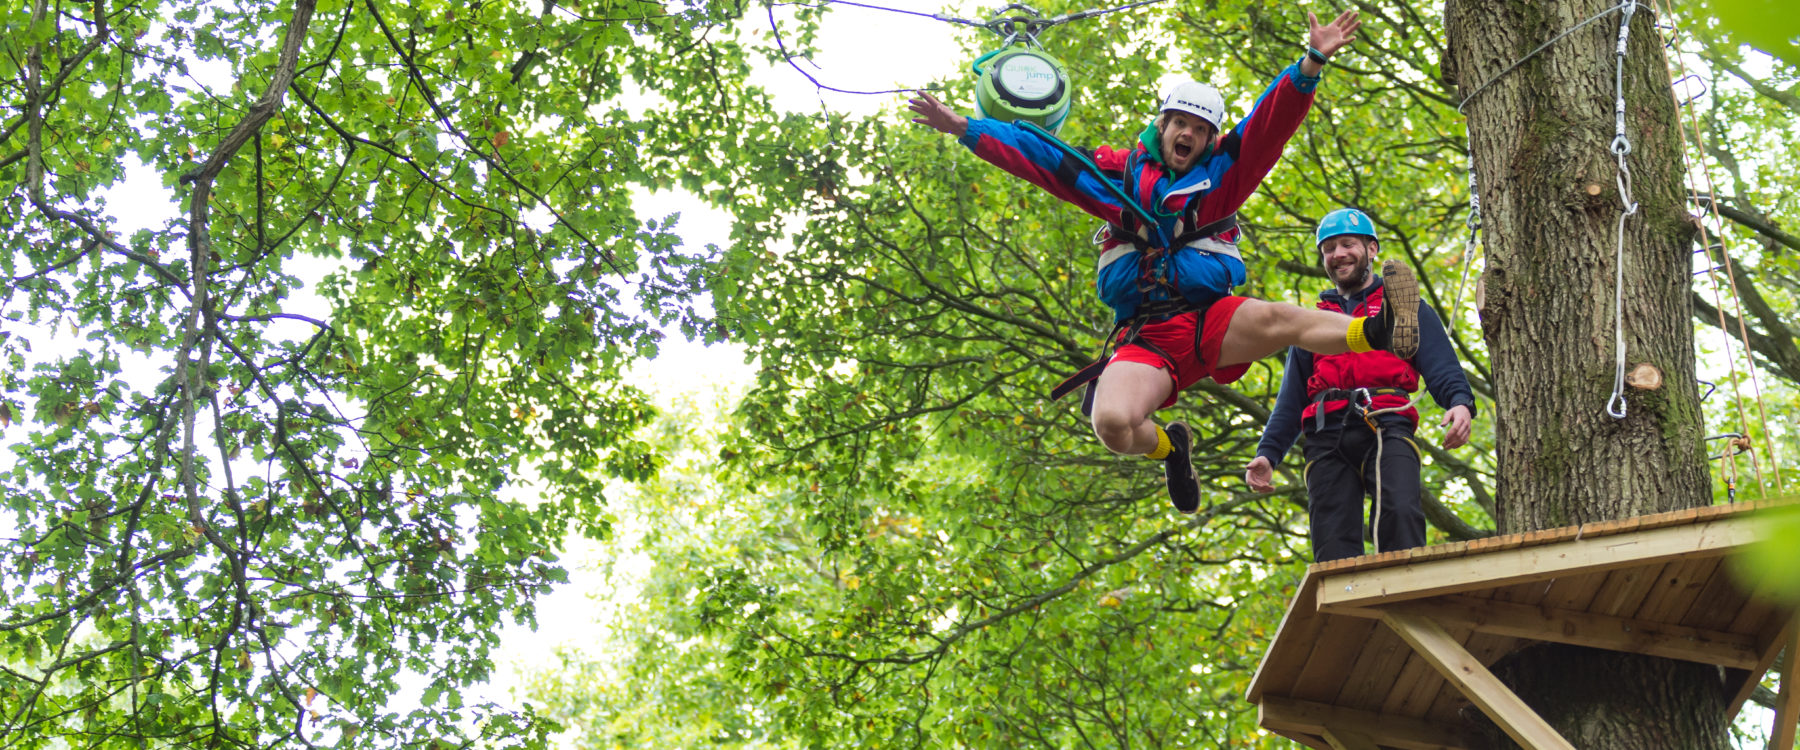 Adrenalin High Rope Activities at Oaker Wood